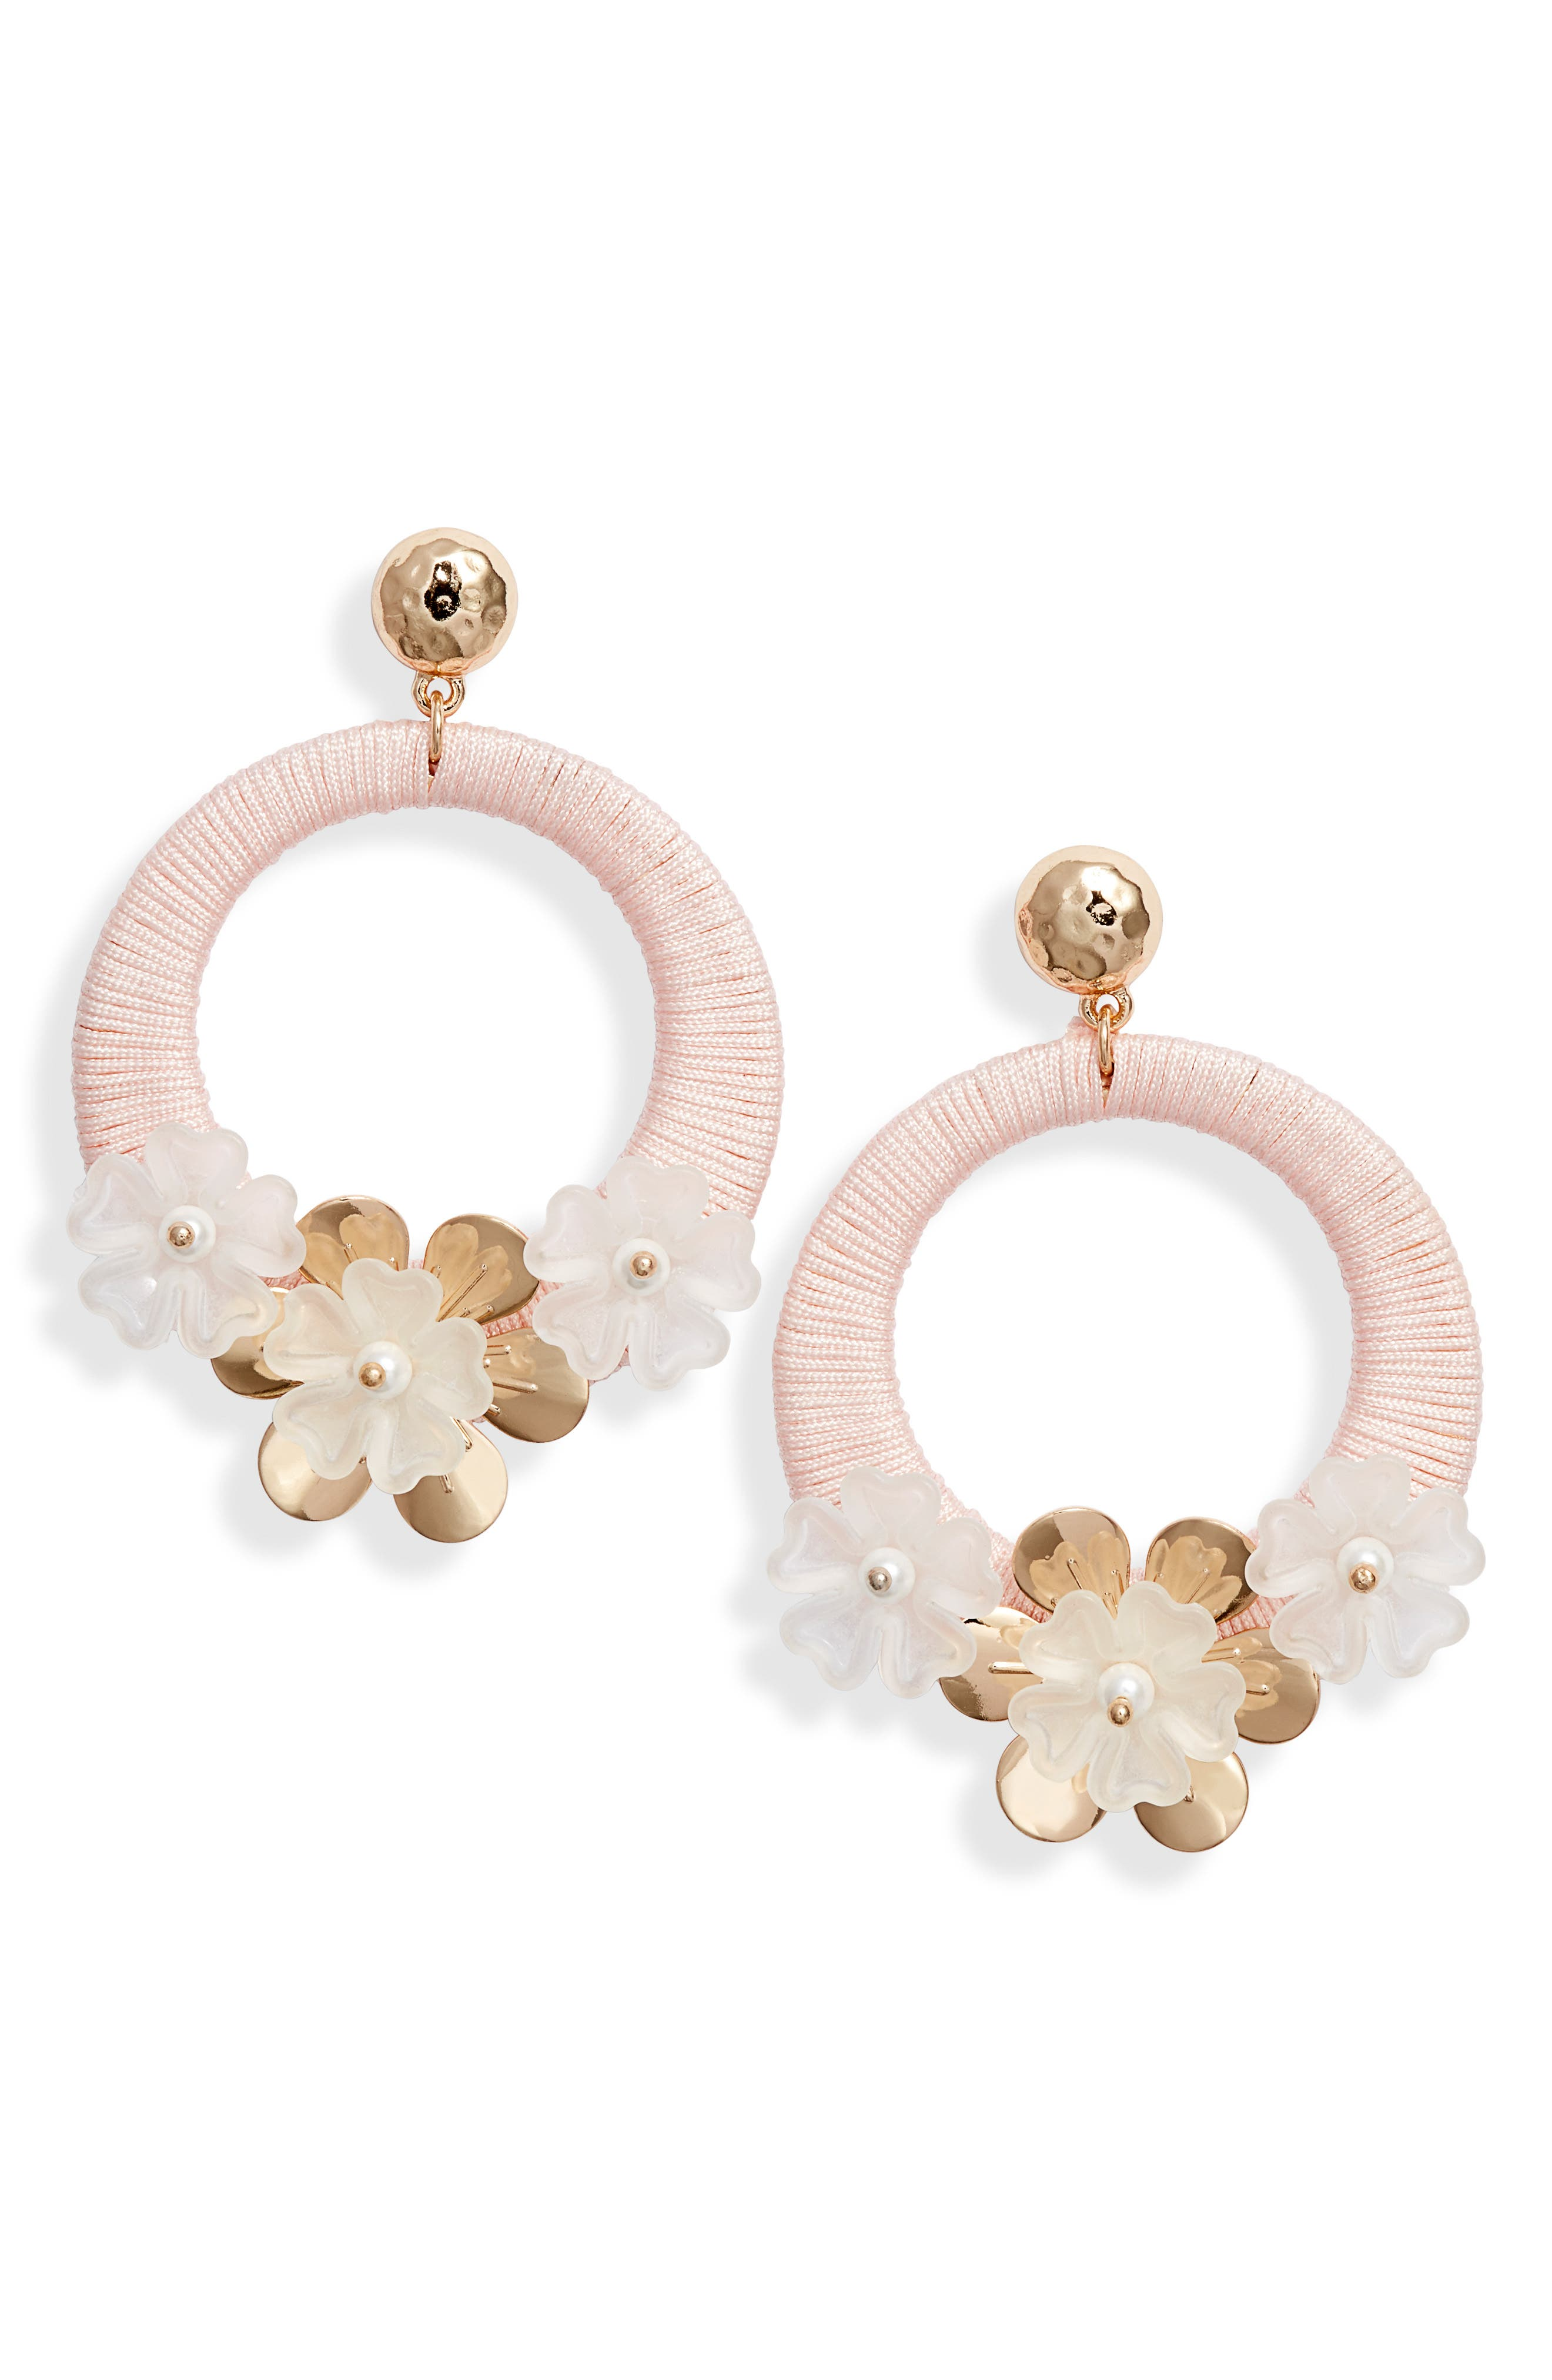 RACHEL PARCELL, Flower Hoop Drop Earrings, Main thumbnail 1, color, PINK PEARL- GOLD